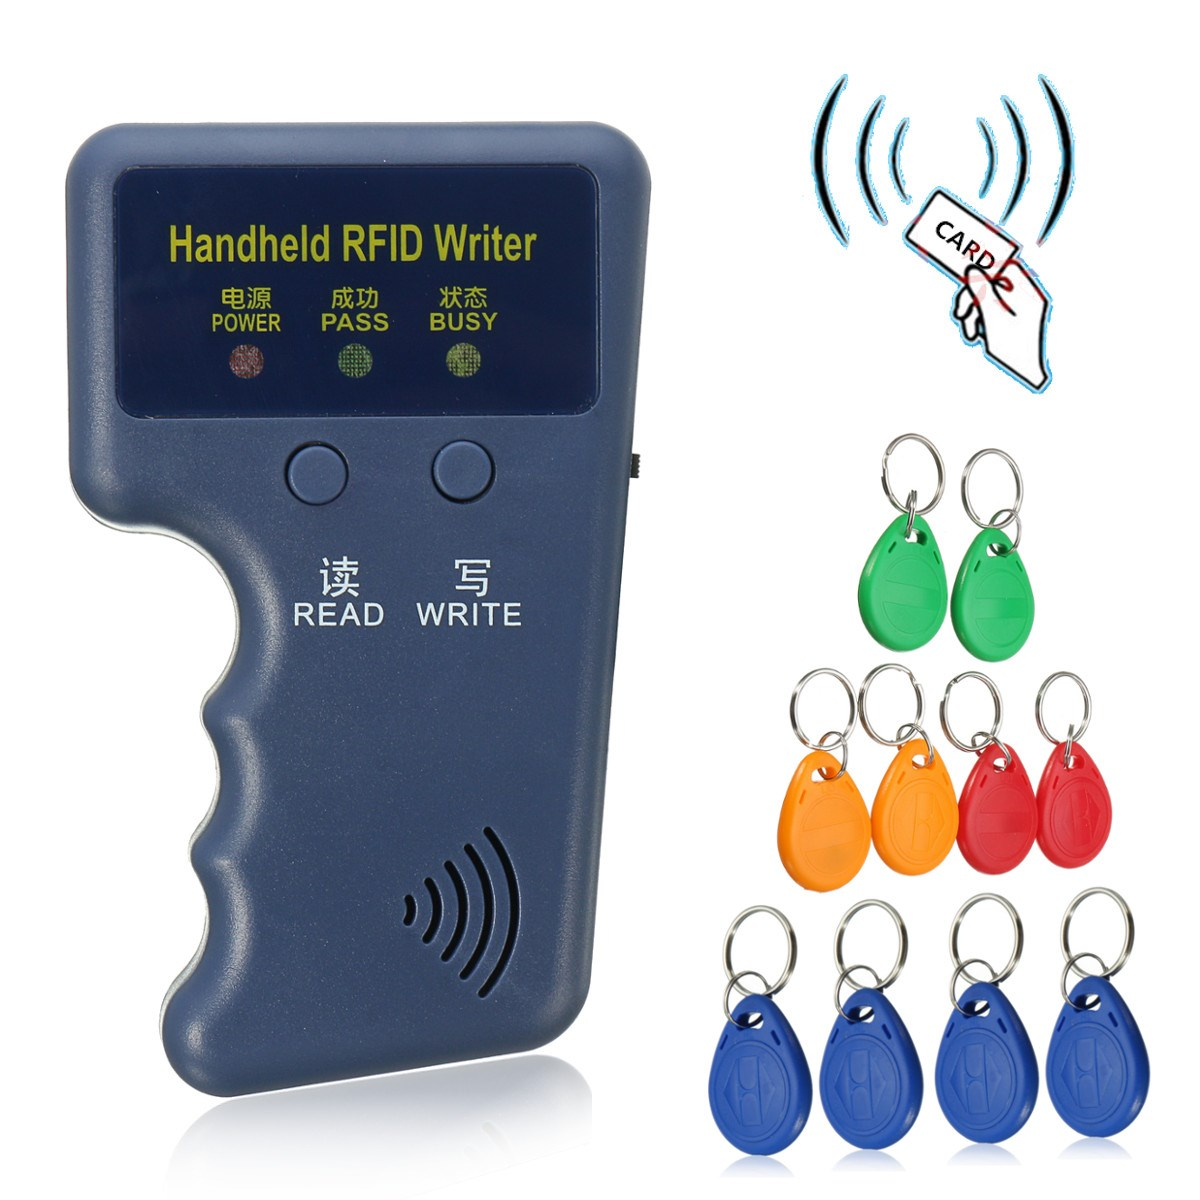 Handheld 125KHz EM4100 RFID Copier Writer Duplicator Programmer Reader + 10 Pcs EM4305 T5577 Rewritable ID Keyfobs Tags Card handheld 125khz em4100 rfid copier writer duplicator programmer reader 5pcs t5577 em4305 rewritable id keyfobs tags card